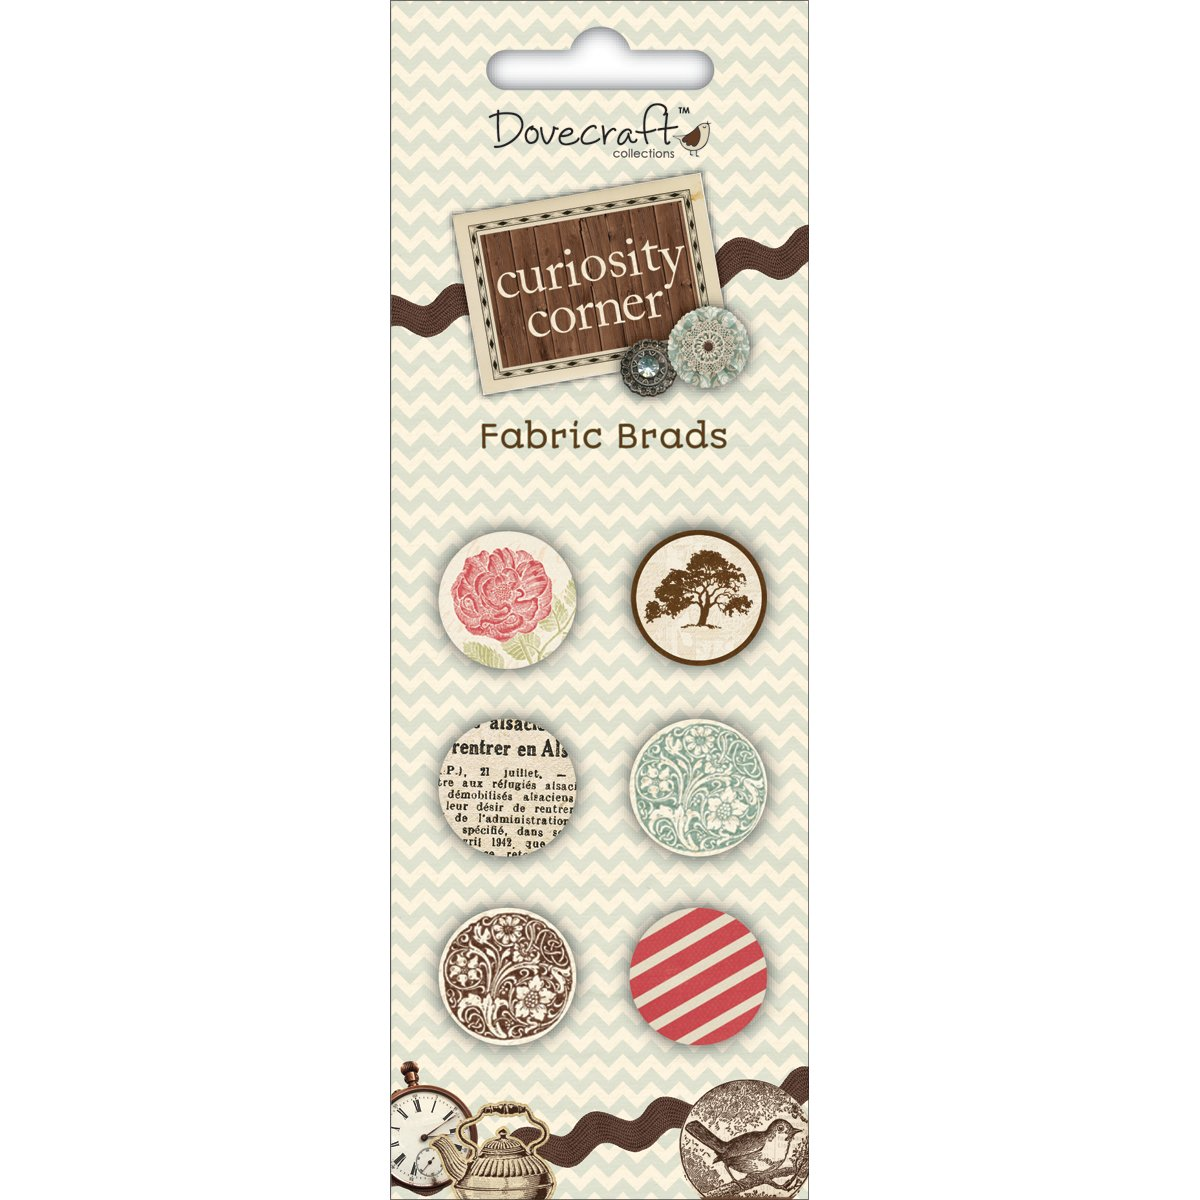 Dovecraft Curiosity Corner Fabric Brads - Pack Of 6 Trimcraft DCES008